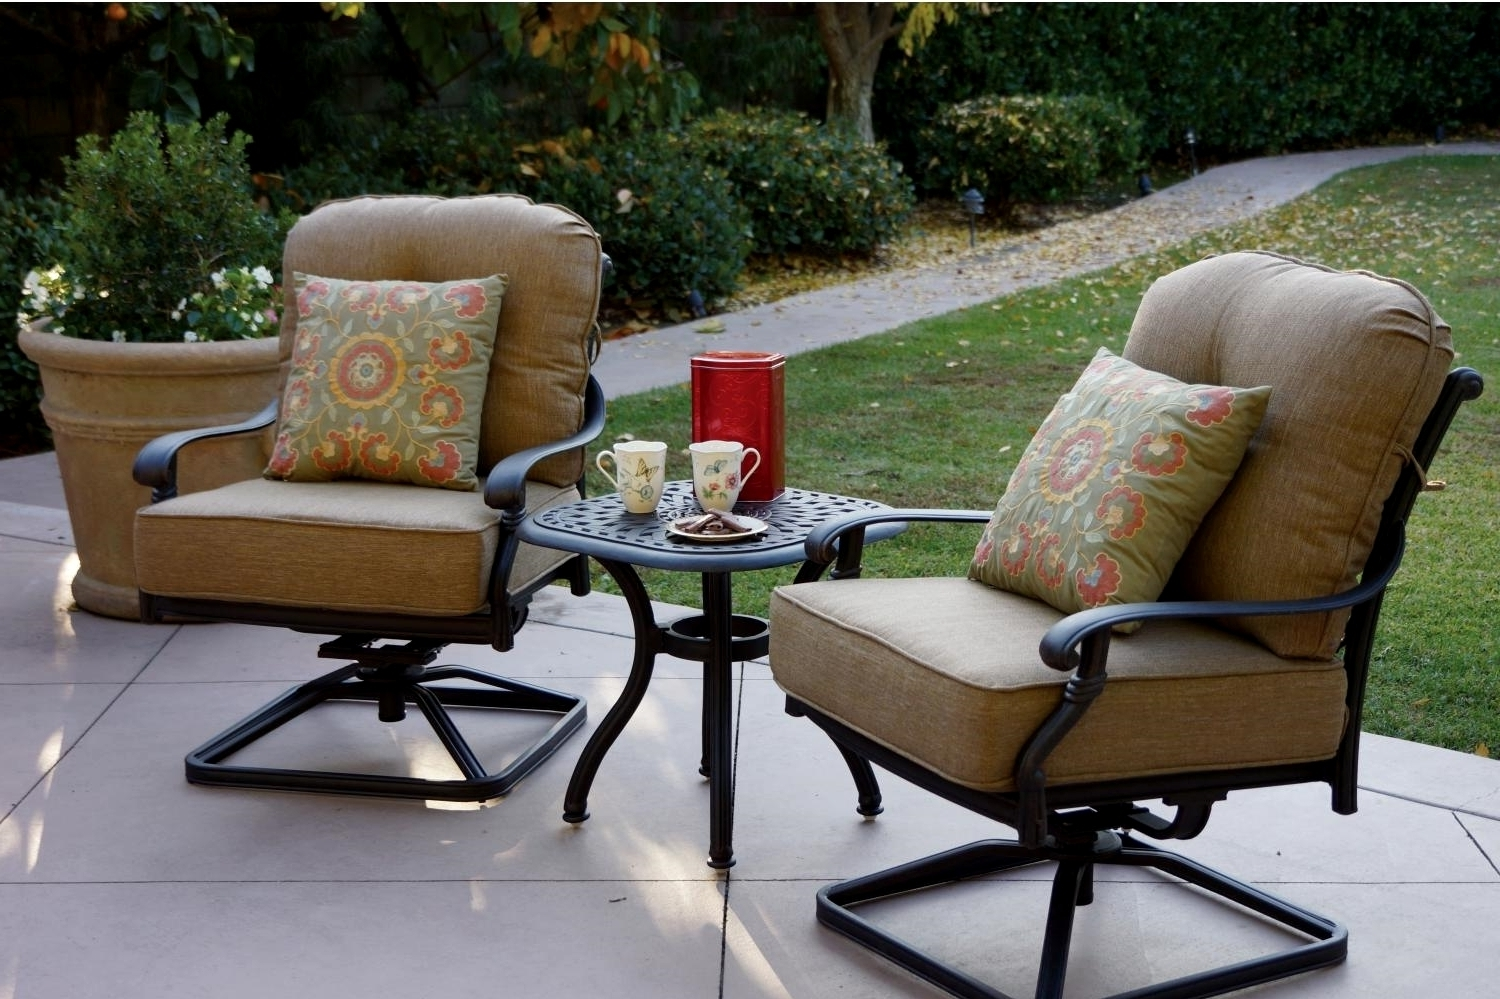 Patio Furniture Cast Aluminum Deep Seating Rocker Set Swivel Club With Most Current Patio Conversation Sets With Rockers (View 10 of 15)